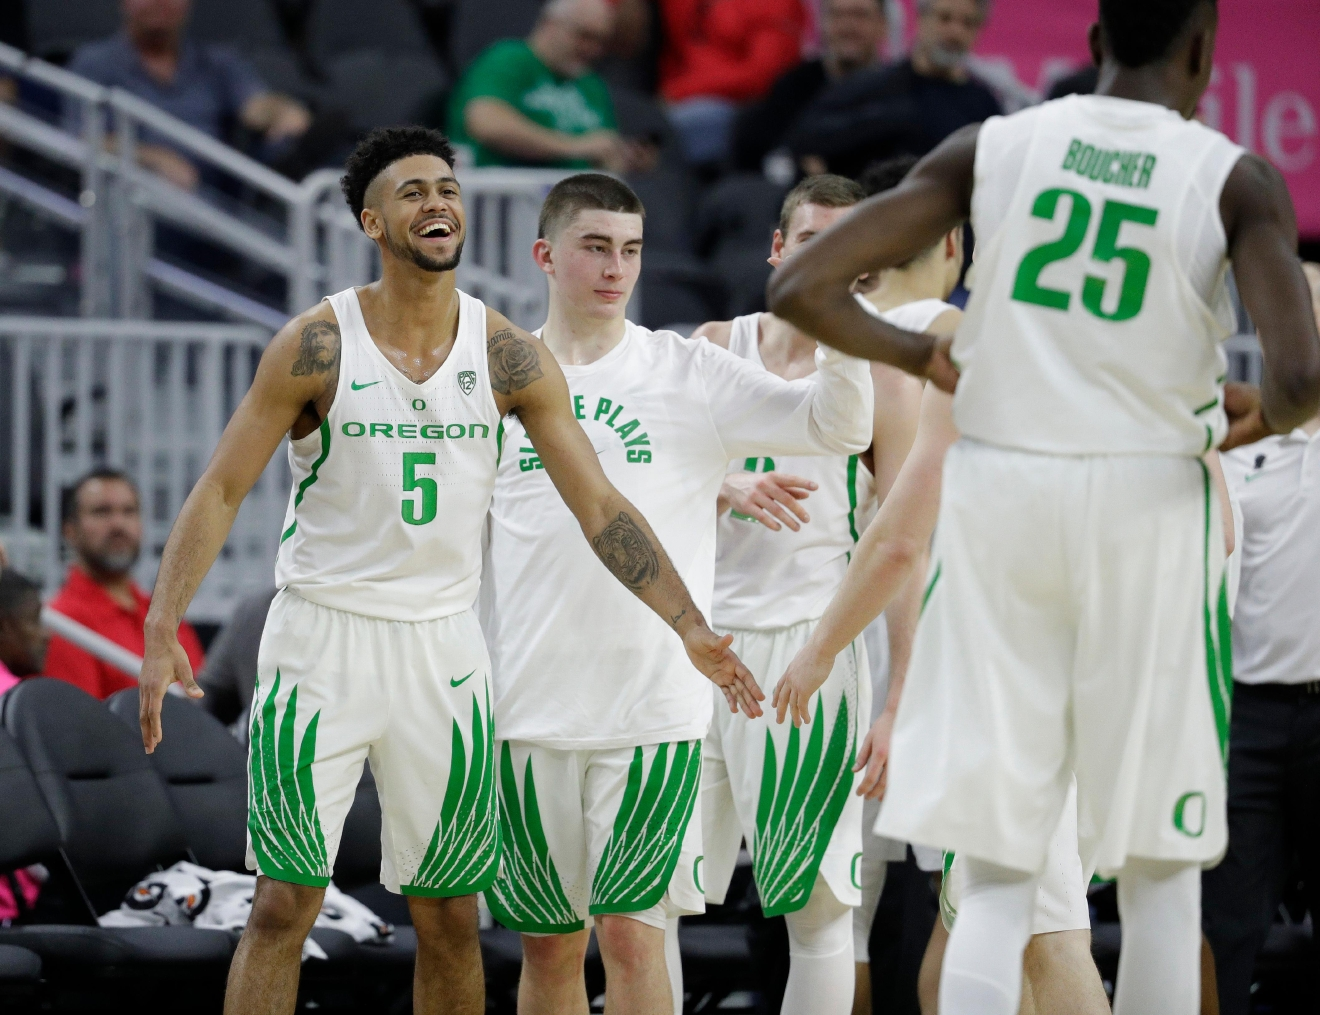 Oregon's Tyler Dorsey (5) celebrates with teammates after defeating Arizona State in an NCAA college basketball game in the quarterfinals of the Pac-12 men's tournament Thursday, March 9, 2017, in Las Vegas. Oregon won 80-57. (AP Photo/John Locher)